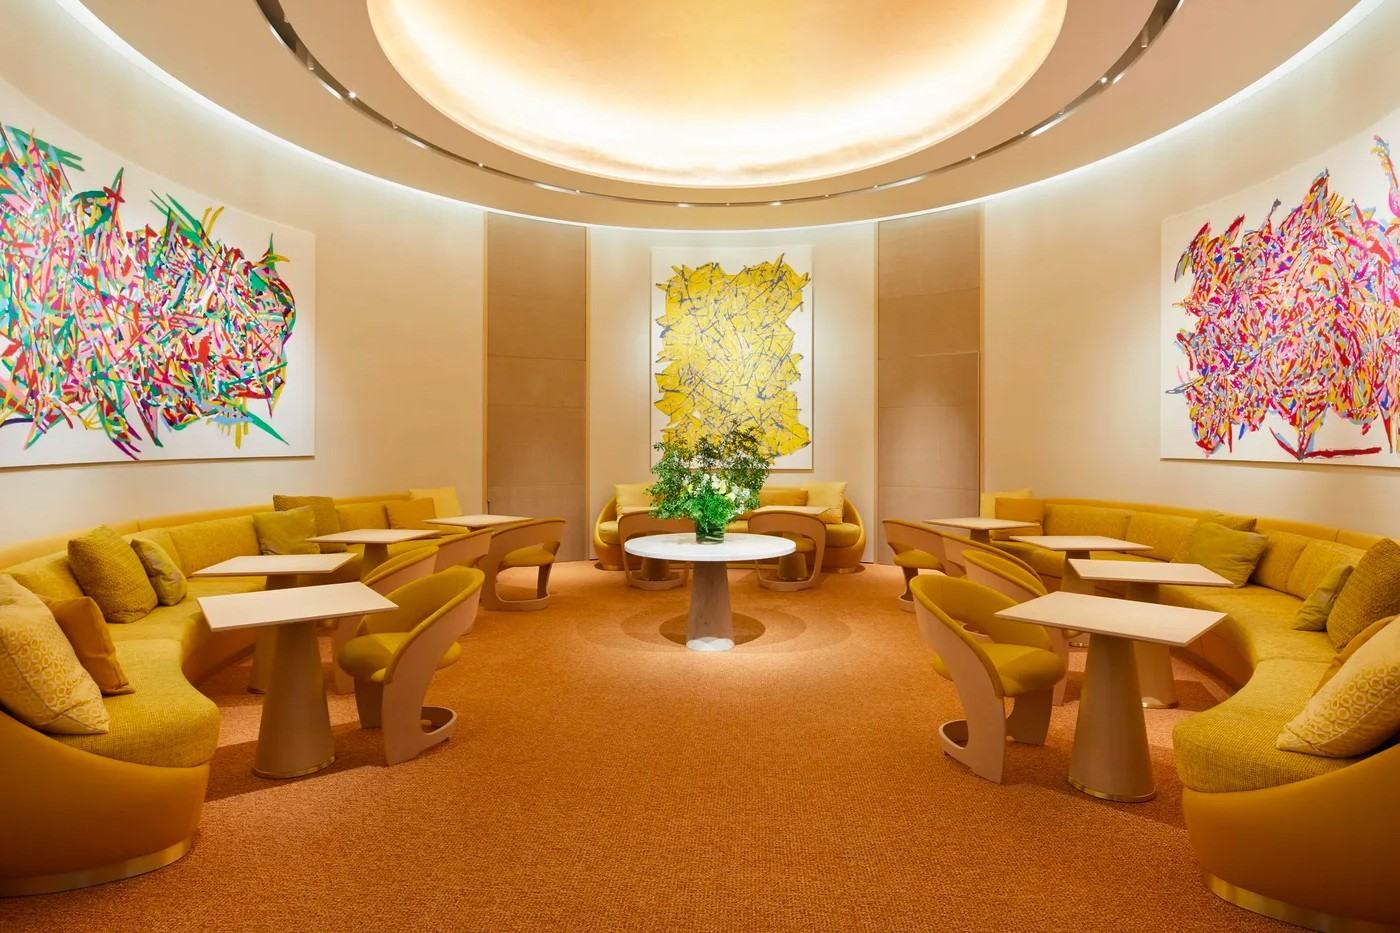 Louis vuitton first restaurant cafe osaka Japan lvmh Le Café V Sugalabo V